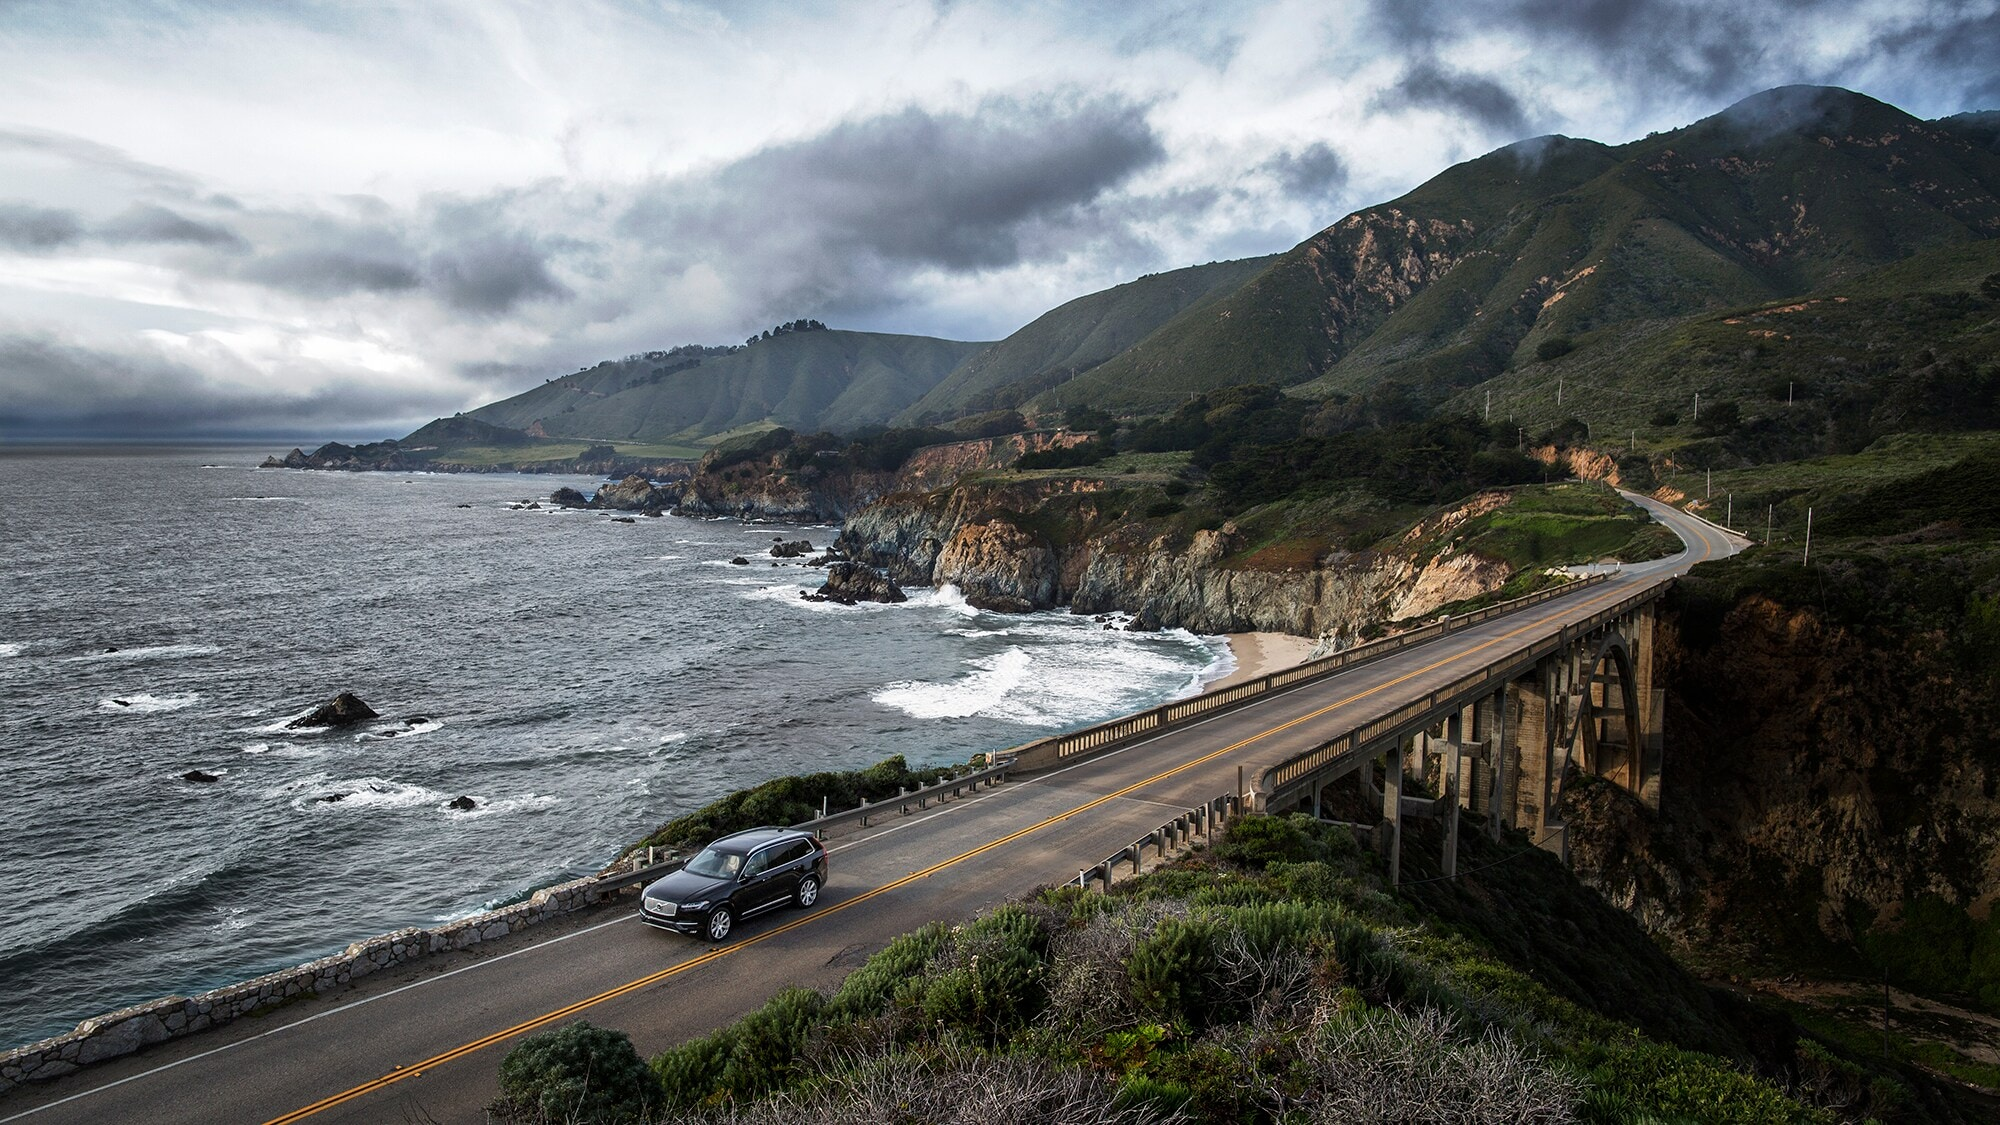 The Volvo XC90 crosses a bridge on California's dramatic Highway 1 on the Pacific coastline